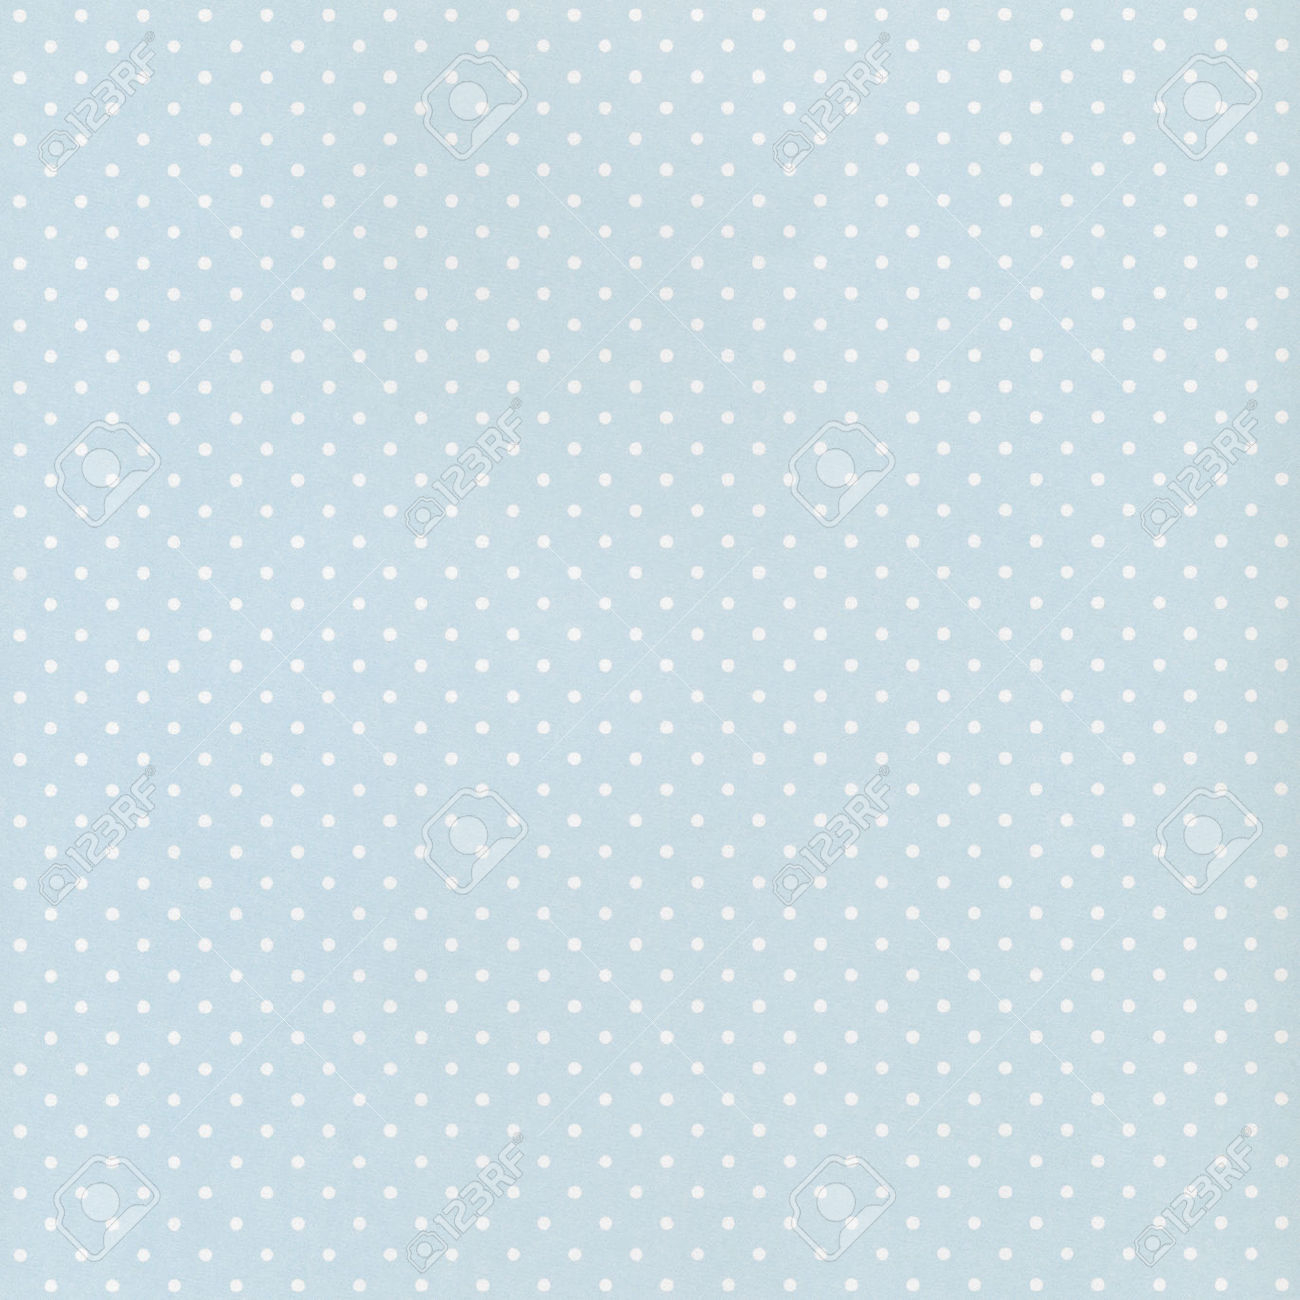 light blue polka dot background hq